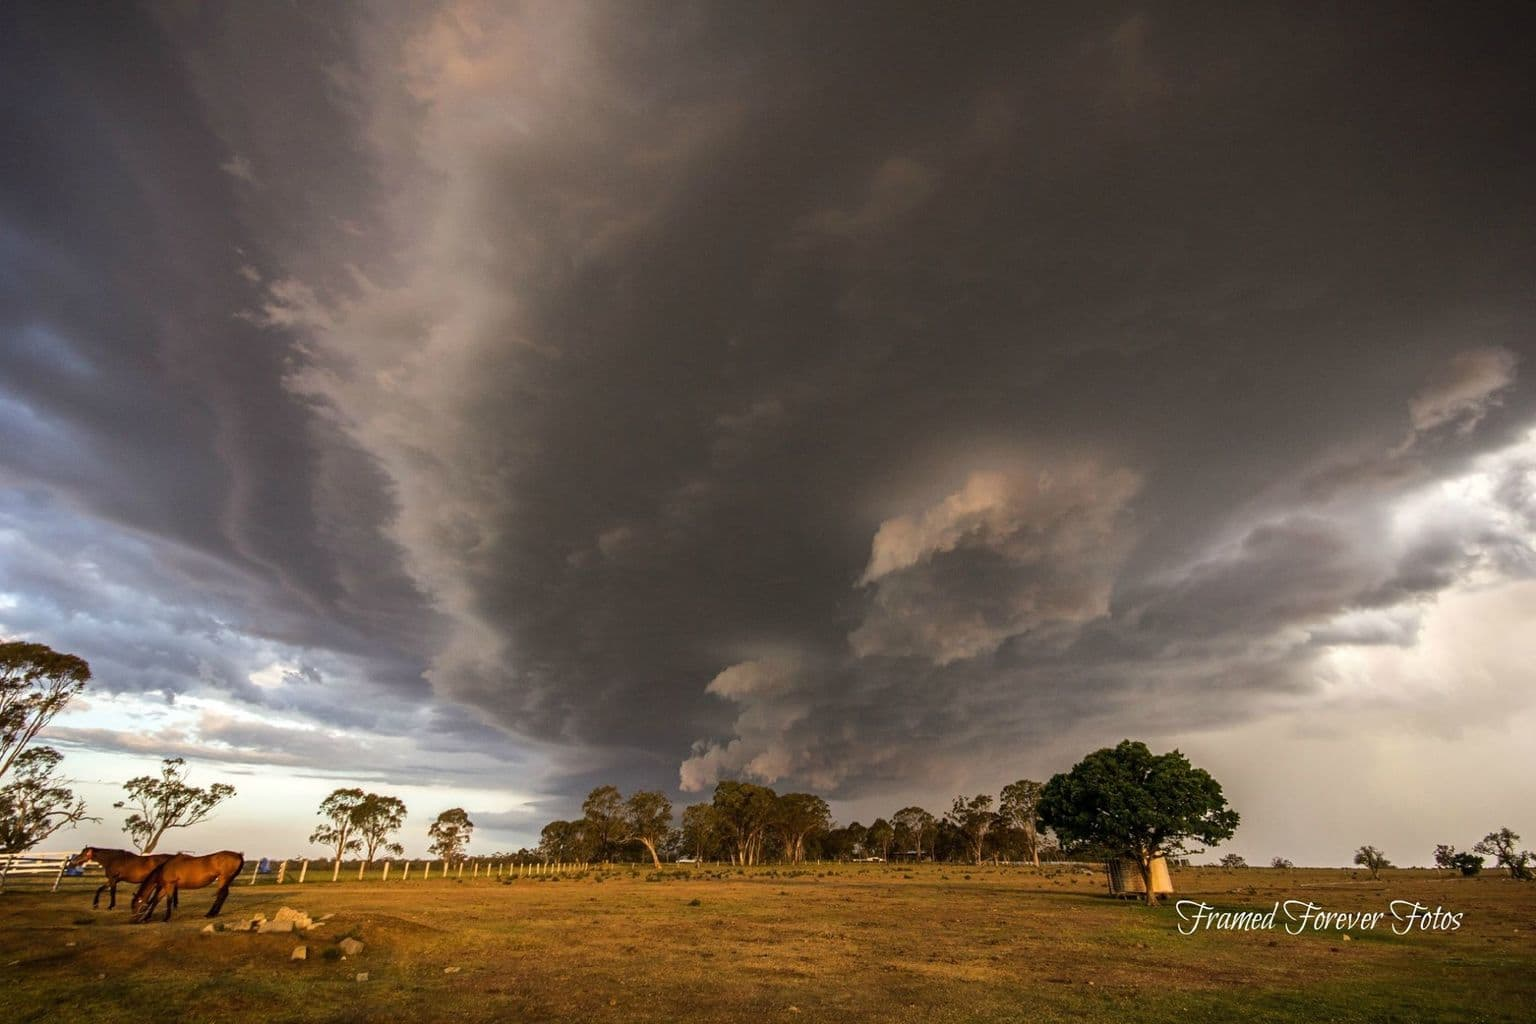 Taken just outside Warwick at the End of October 2014. Spent all day taking pictures at the Rodeo then a nice little storm formed. Was taken out this day by Chris with 2 other friends Megs and Michelle. Had a Ball. SE Qld Australia